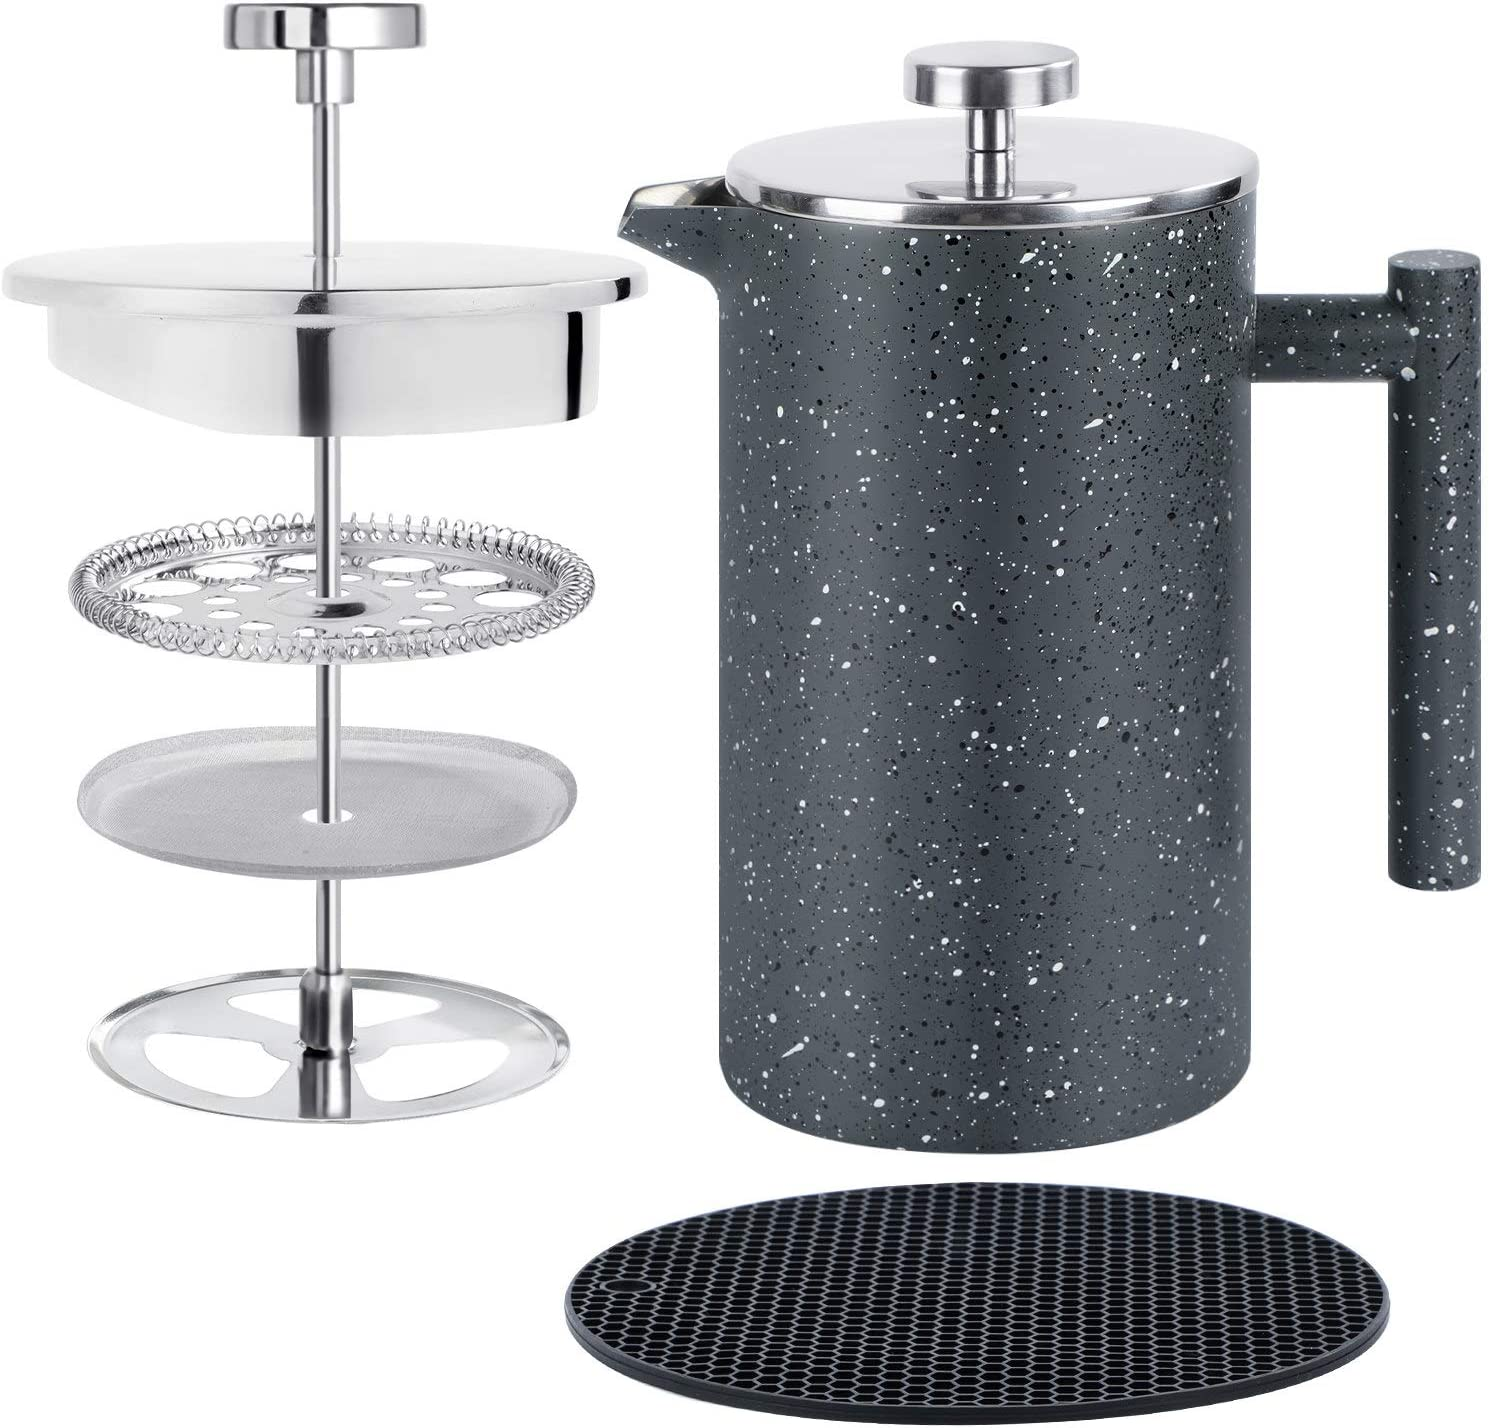 KOTEFFR French Press– 34oz/1.0L Coffee Press French Press Coffee Maker with Food Grade Stainless Steel – 18/10 and Double Wall Insulation & Unique Filter Screen for Good Coffee and Tea.